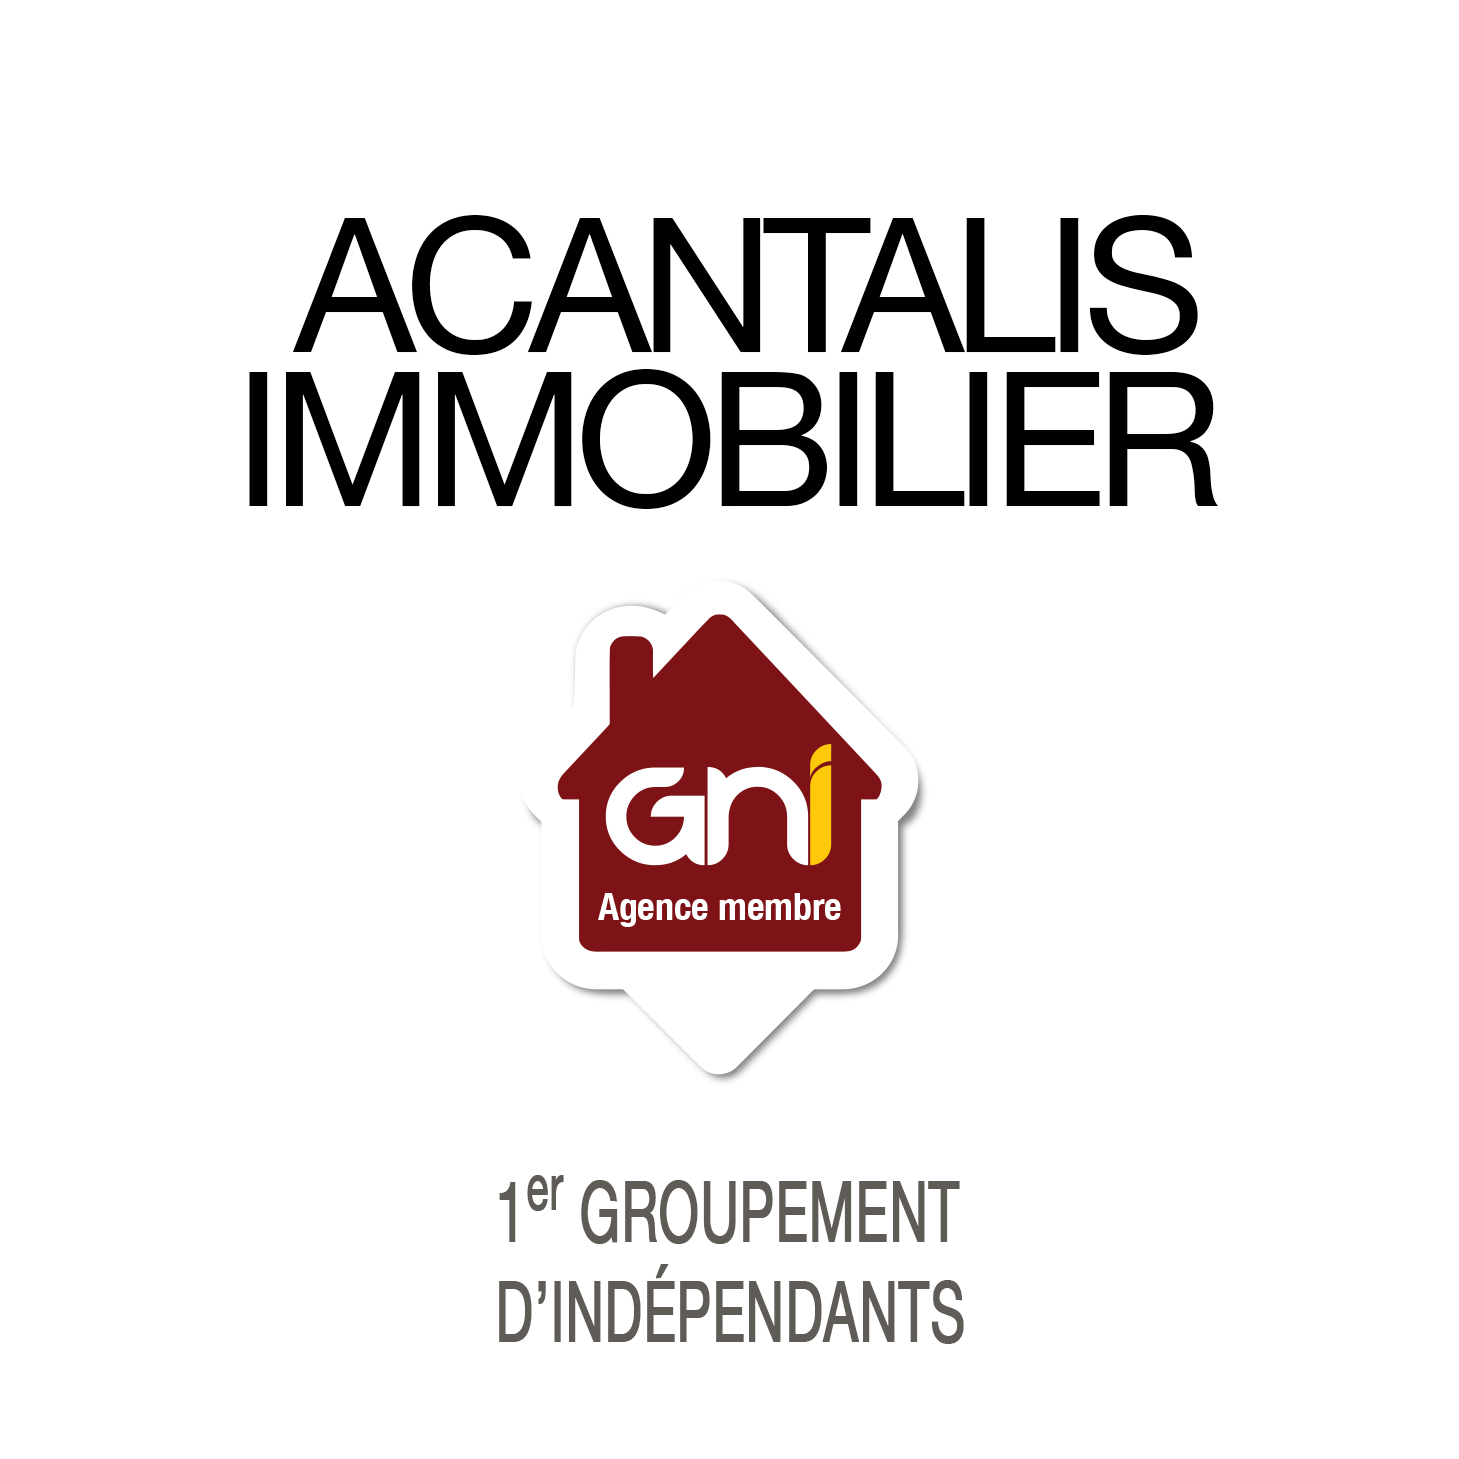 ACANTALIS IMMOBILIER